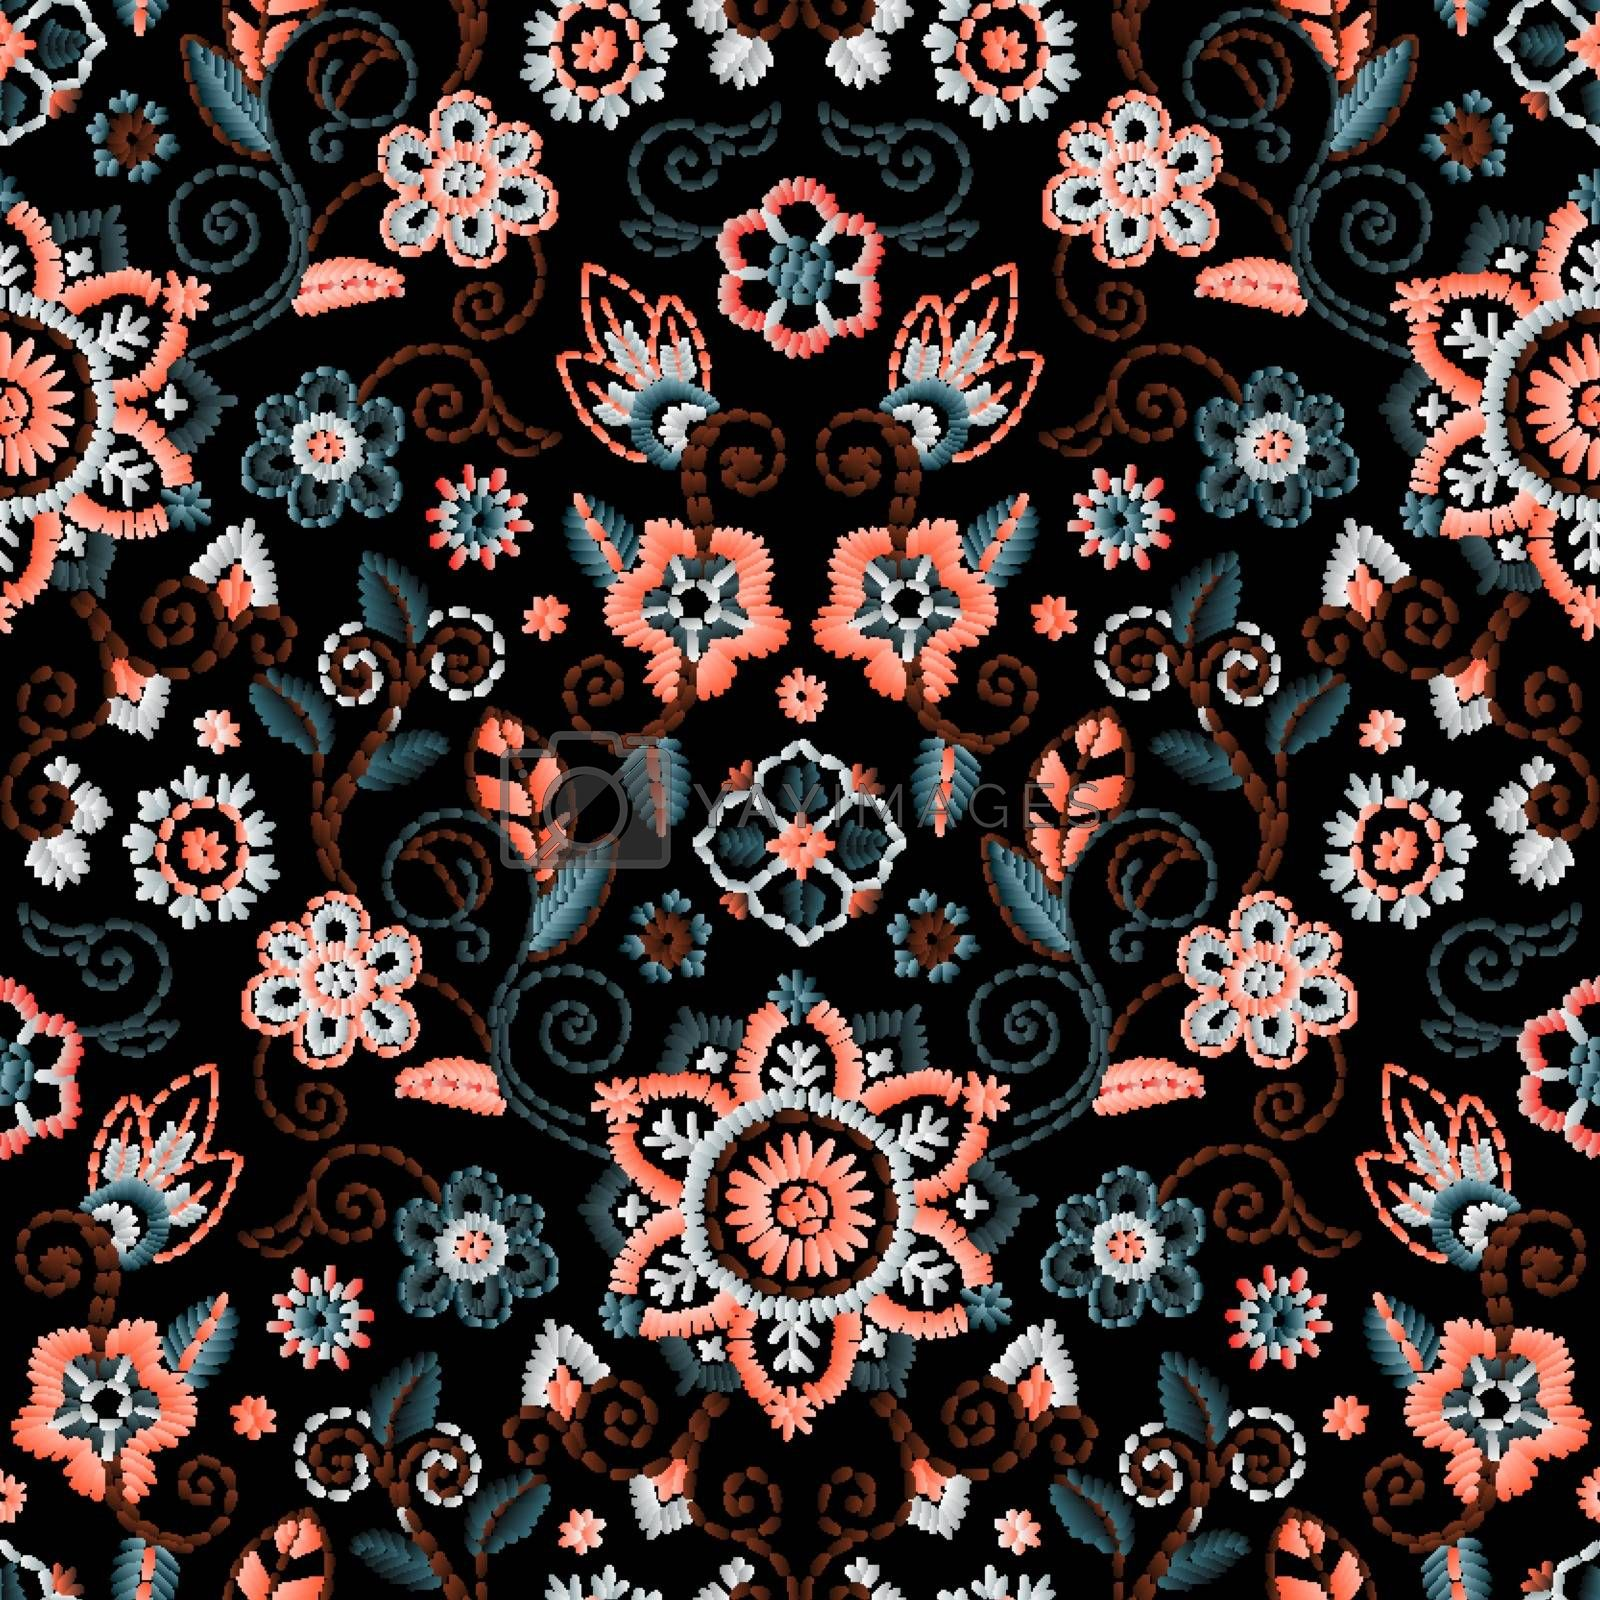 Embroidery seamless pattern with beautiful flowers. Vector floral ornament on dark background.